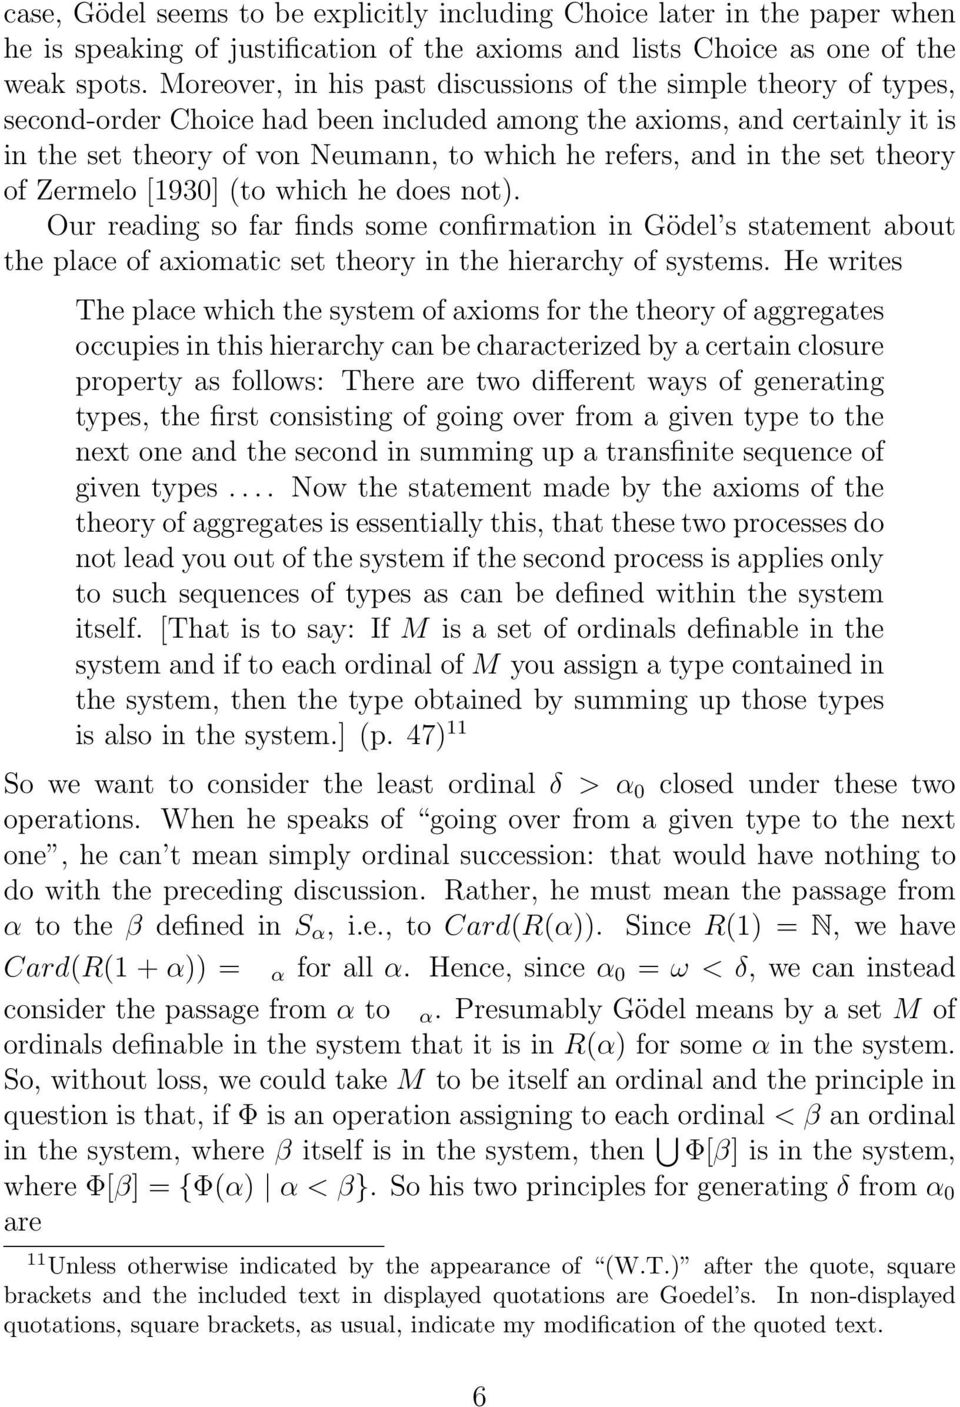 in the set theory of Zermelo [1930] (to which he does not). Our reading so far finds some confirmation in Gödel s statement about the place of axiomatic set theory in the hierarchy of systems.